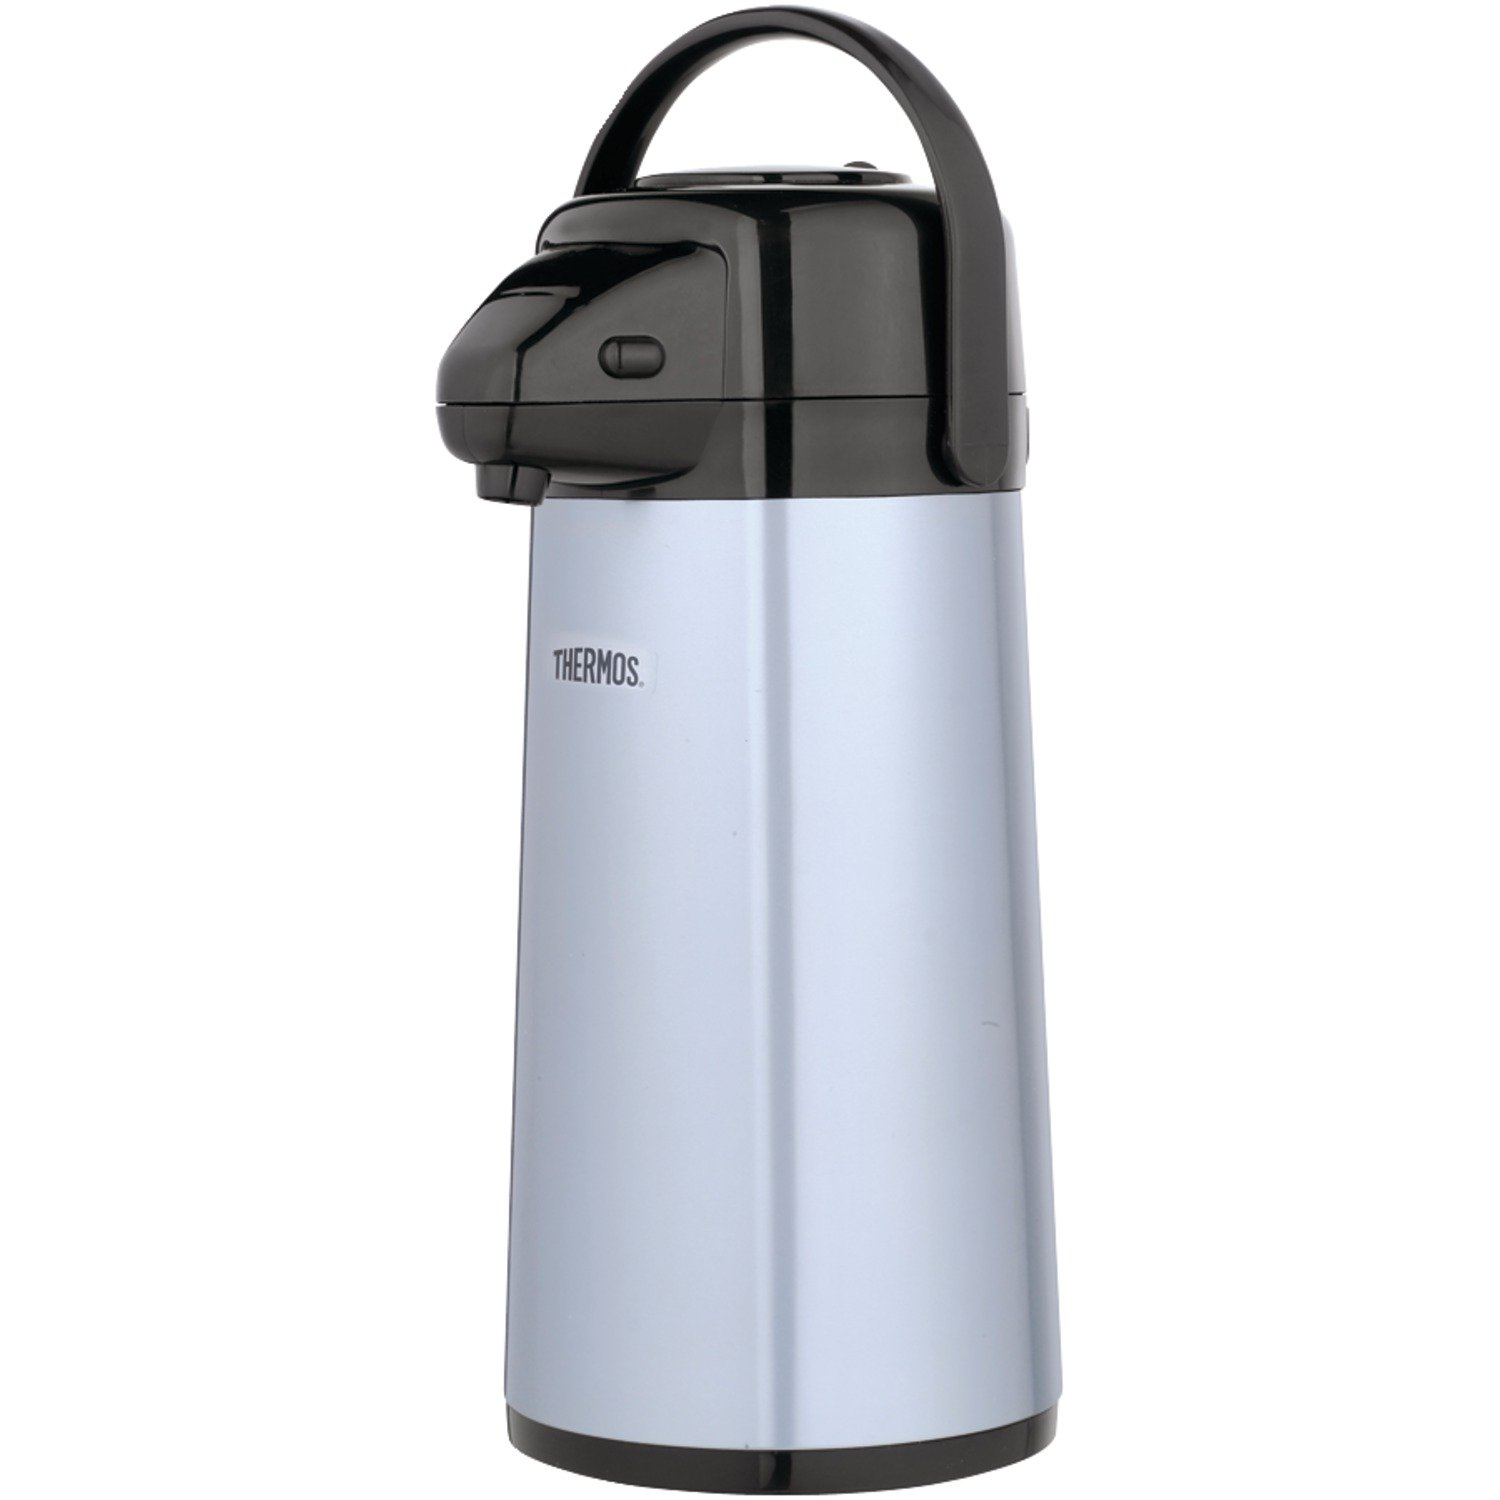 Thermos Cafe Thermos